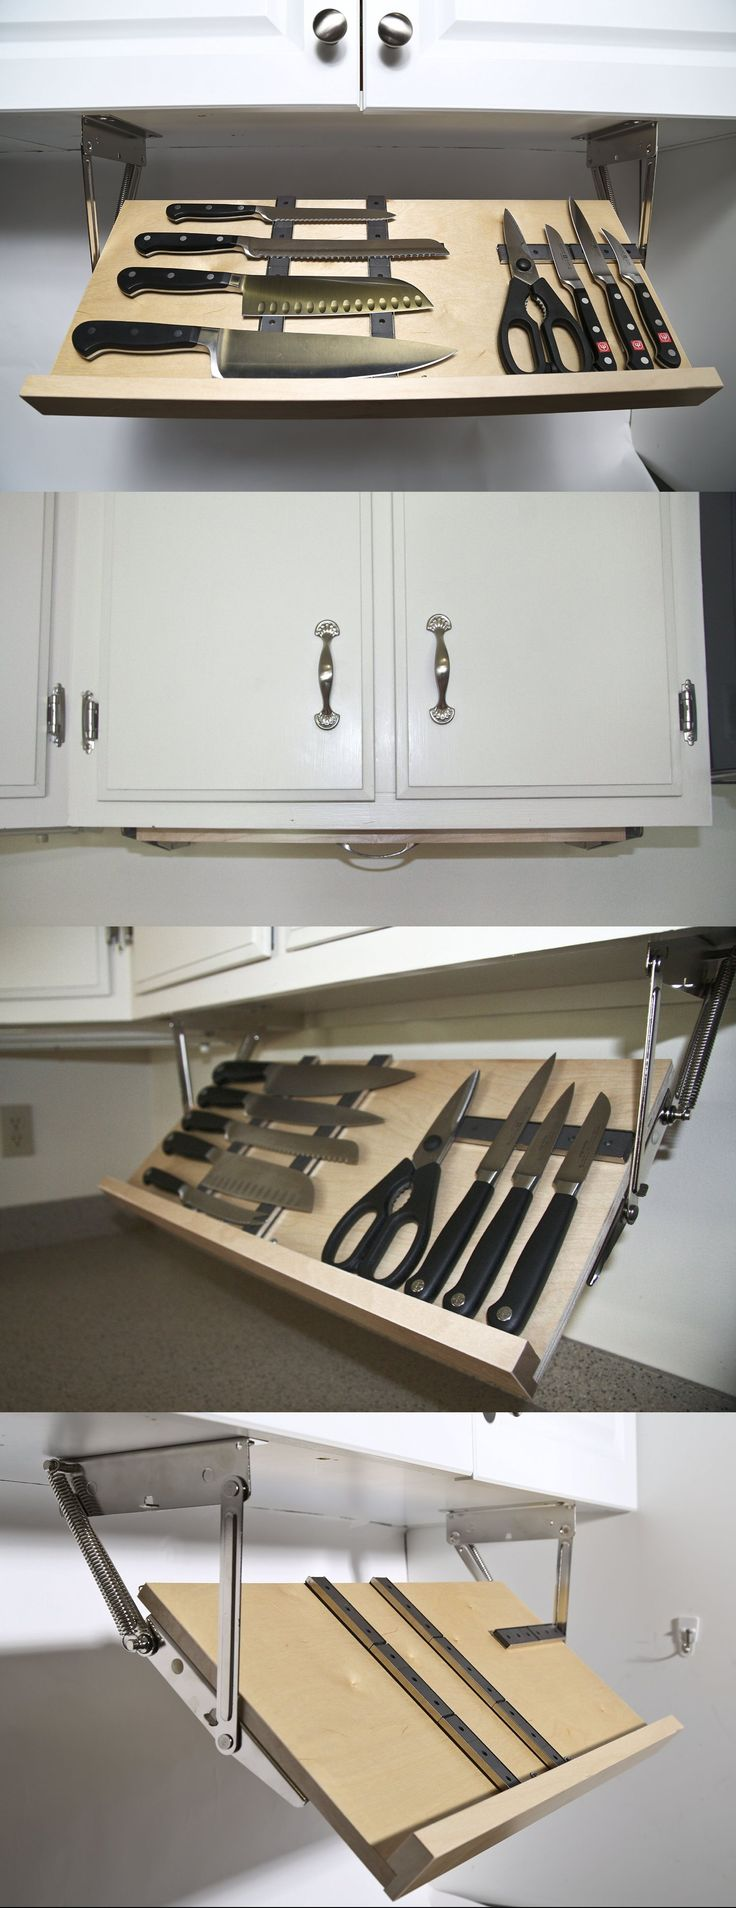 The 25 best under cabinet storage ideas on pinterest Kitchen under cabinet storage ideas